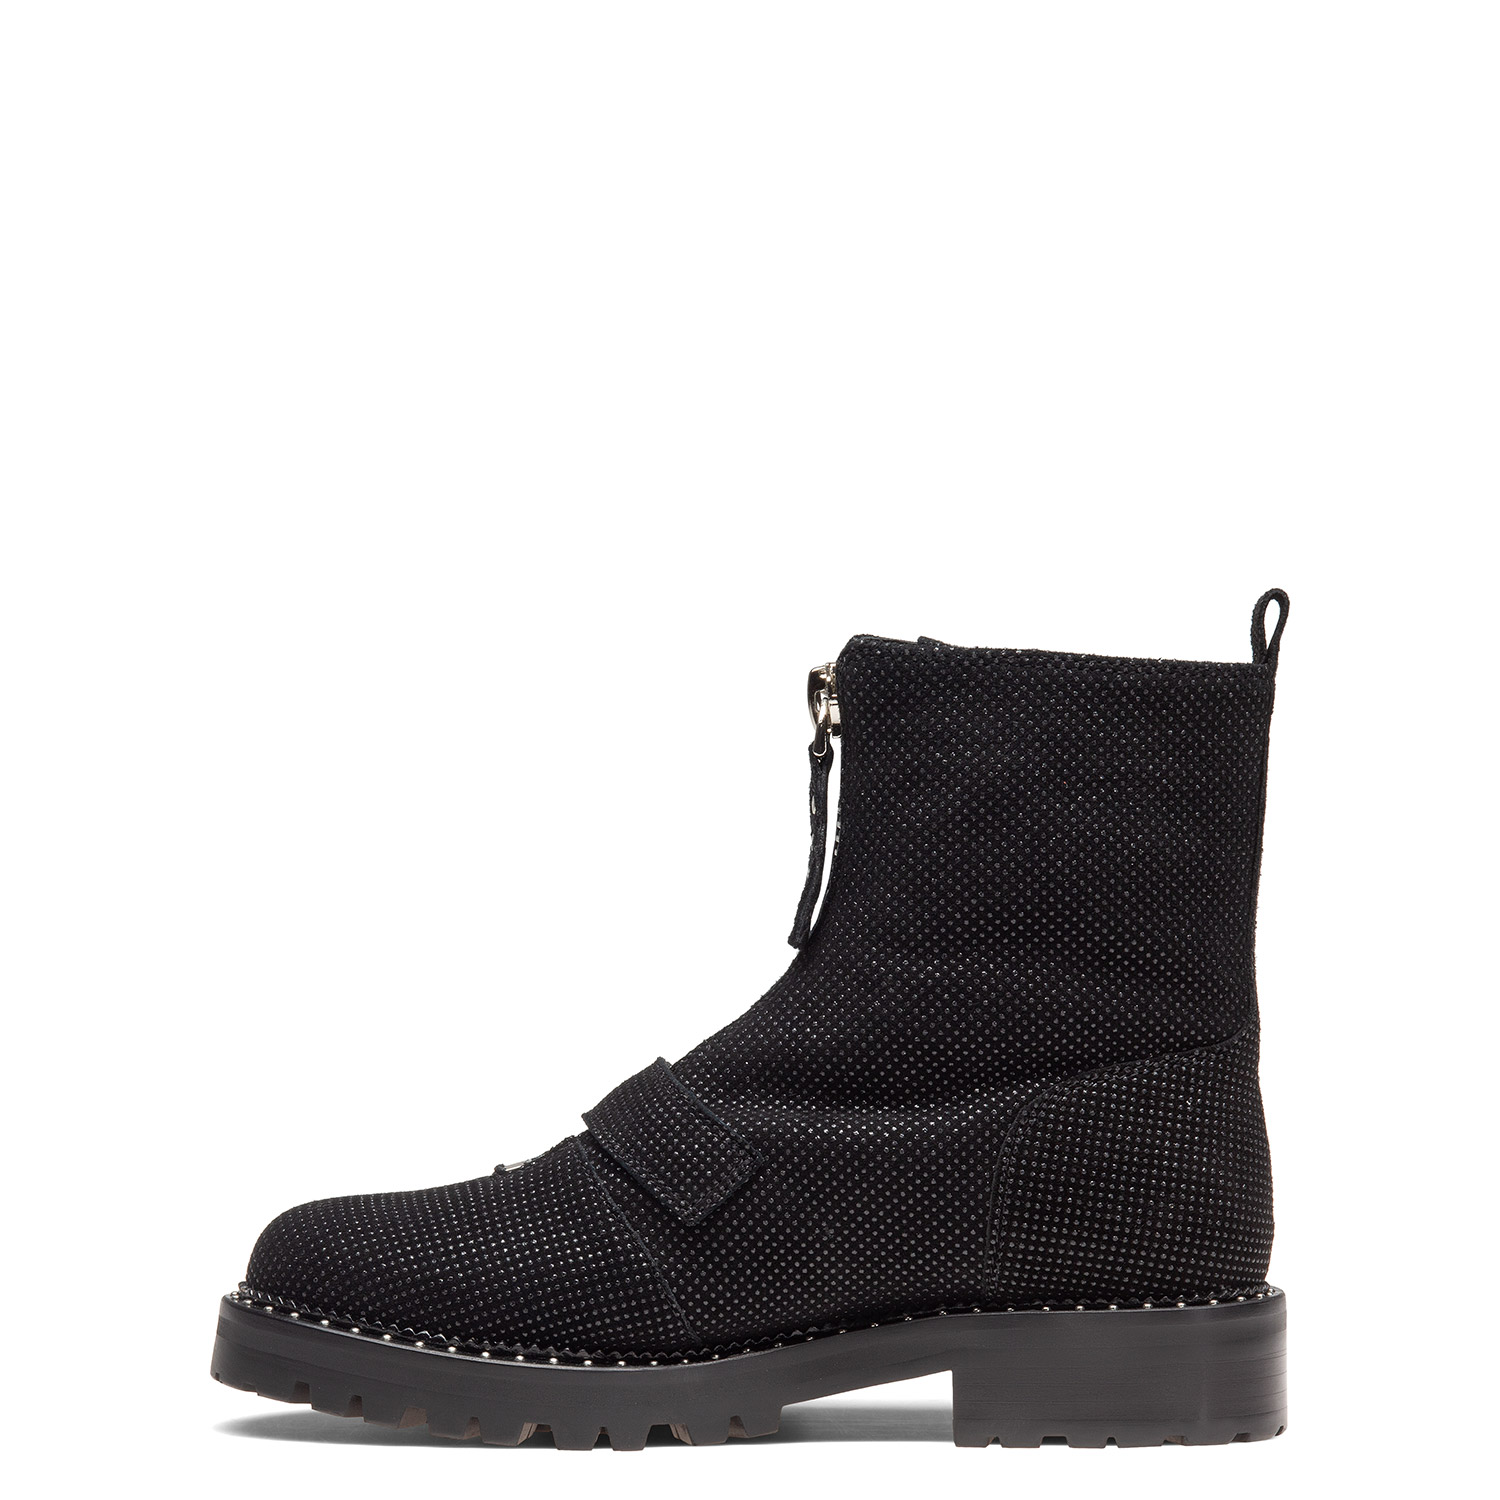 Women's ankle boots PAZOLINI JH-THE2-1V